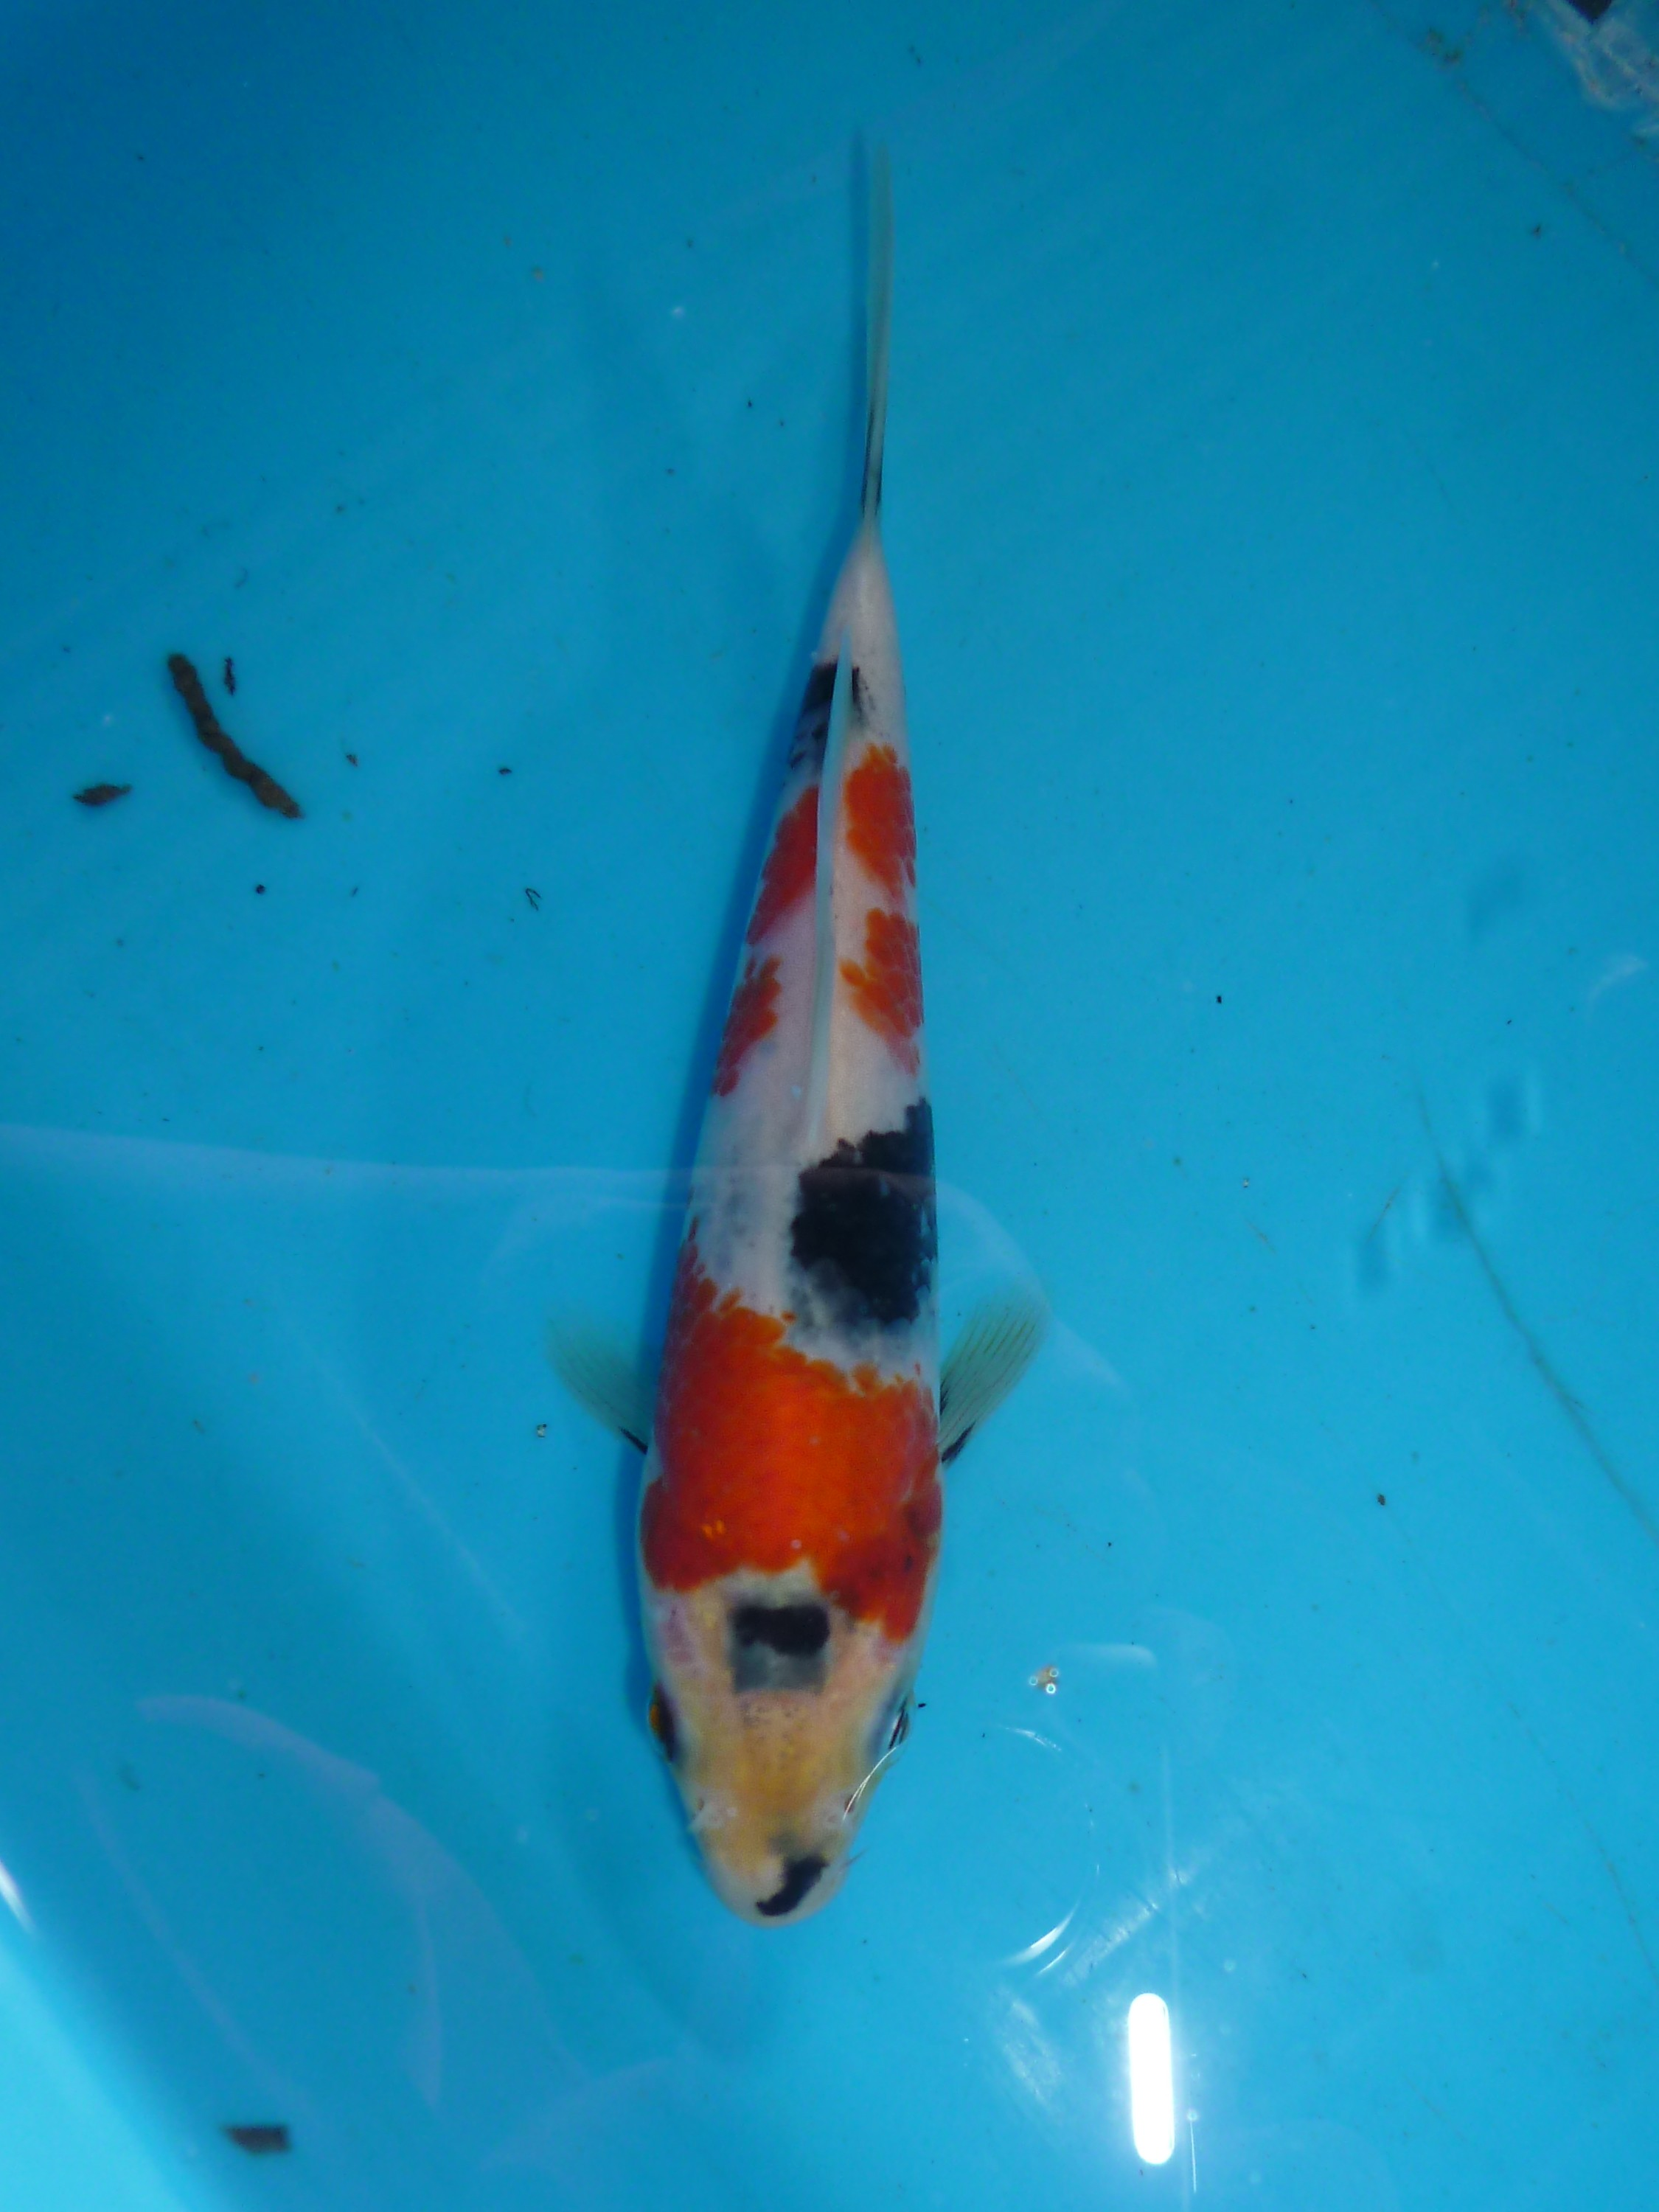 Marugen koi farm show quality showa koi fishes for sale for Koi carp fish for sale